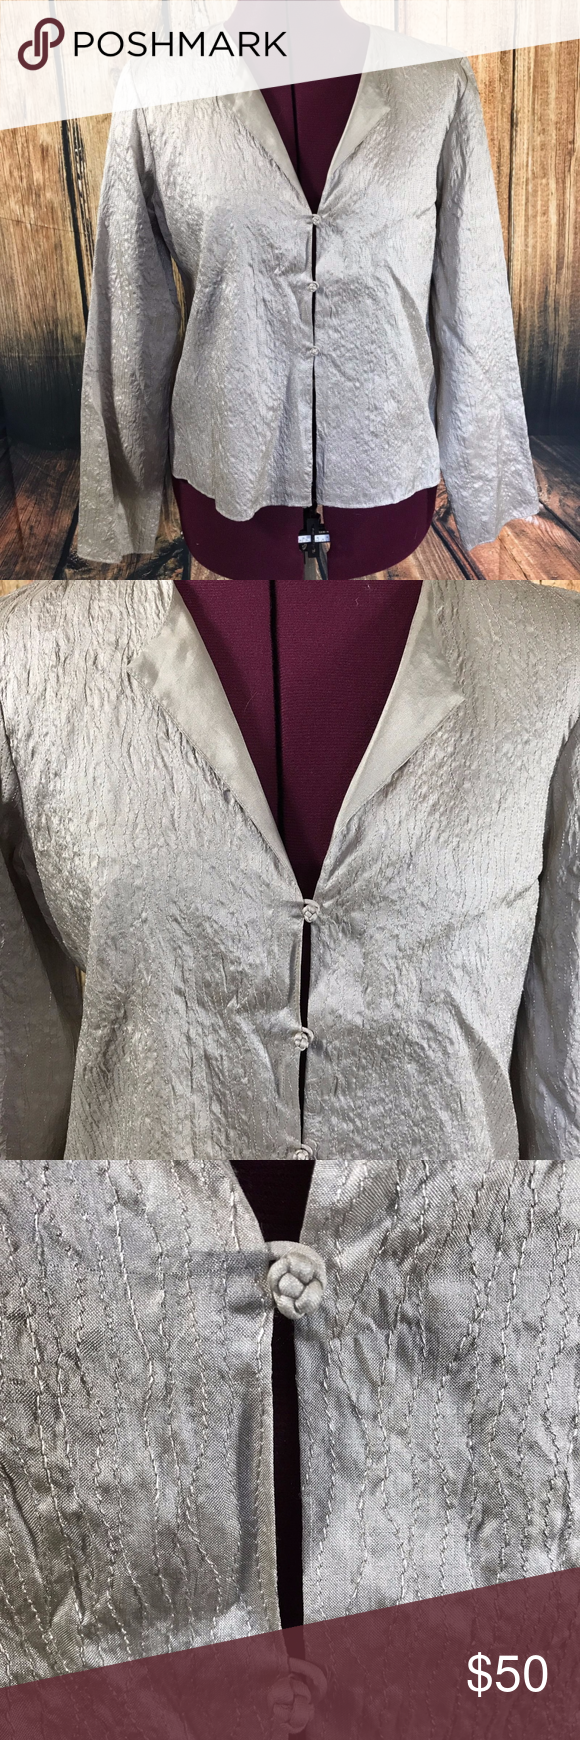 Eileen fisher silk frog button top eileen fisher fisher and closure